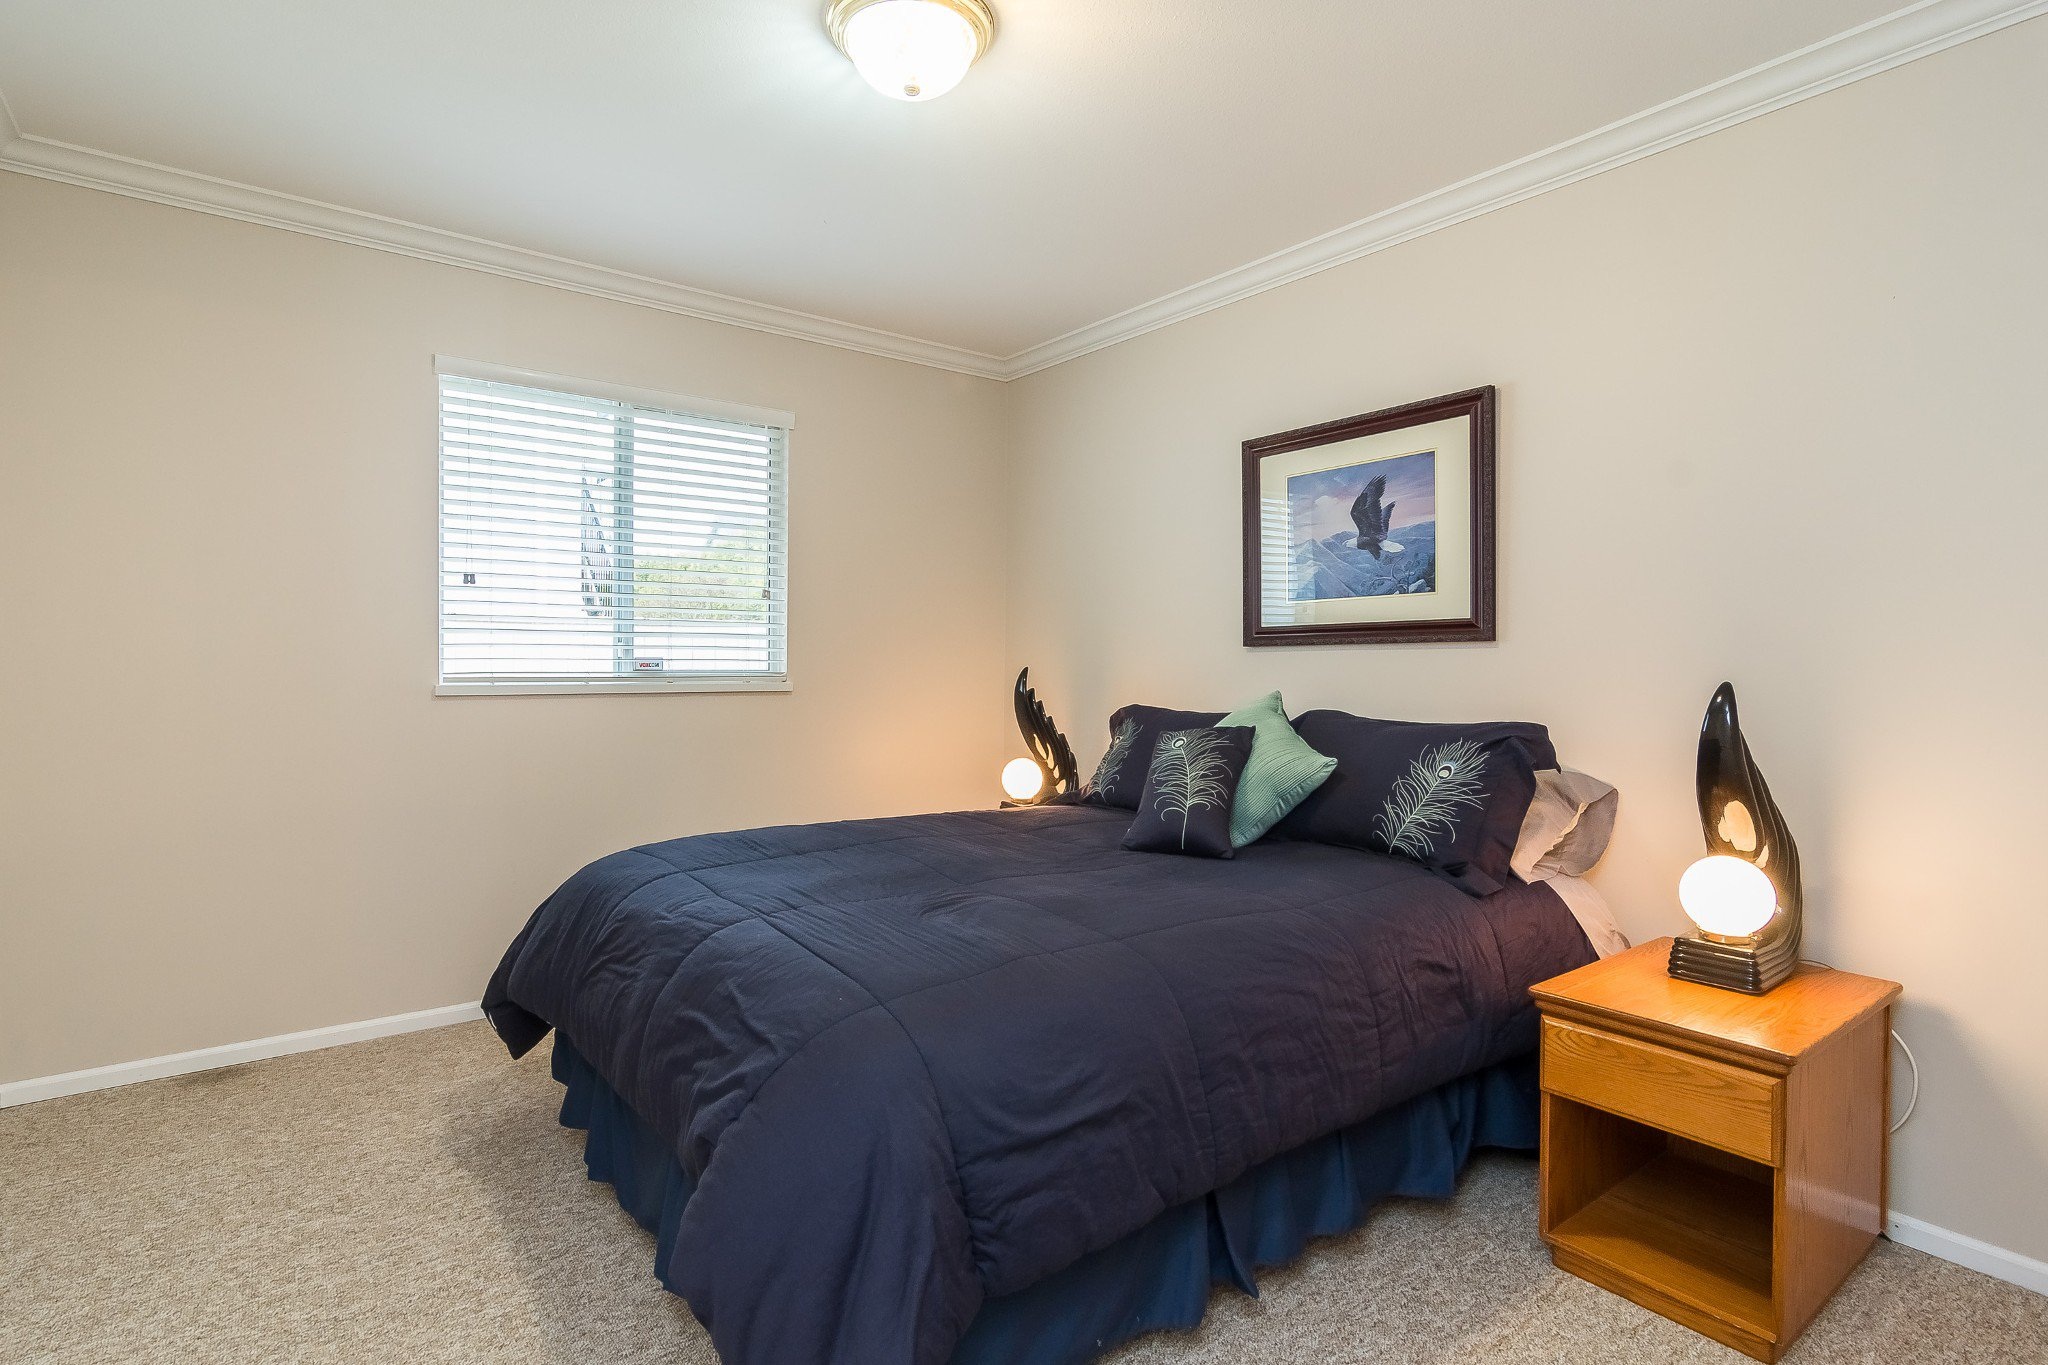 Photo 23: Photos: 6004 170 Street in Surrey: Cloverdale BC House for sale (Cloverdale)  : MLS®# R2355466